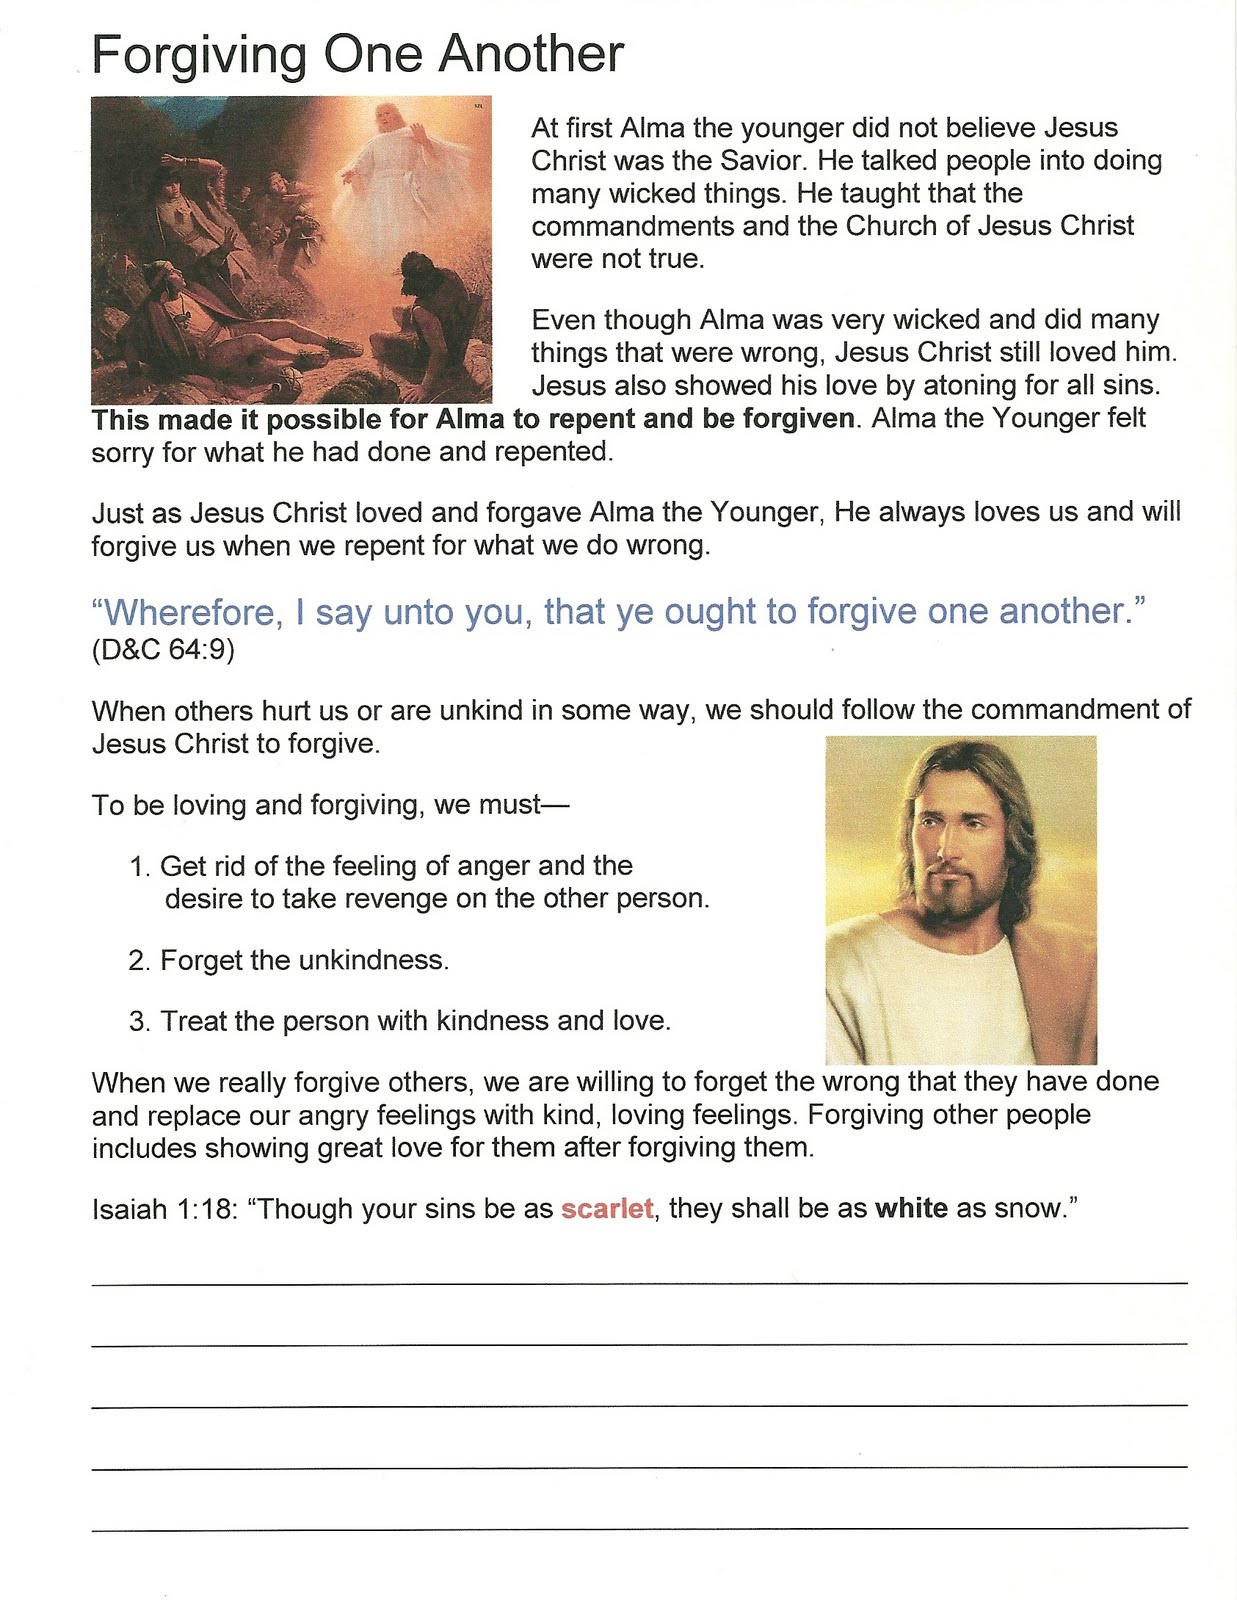 Primary 3 Lesson 23 Forgiving One Another Journal Page